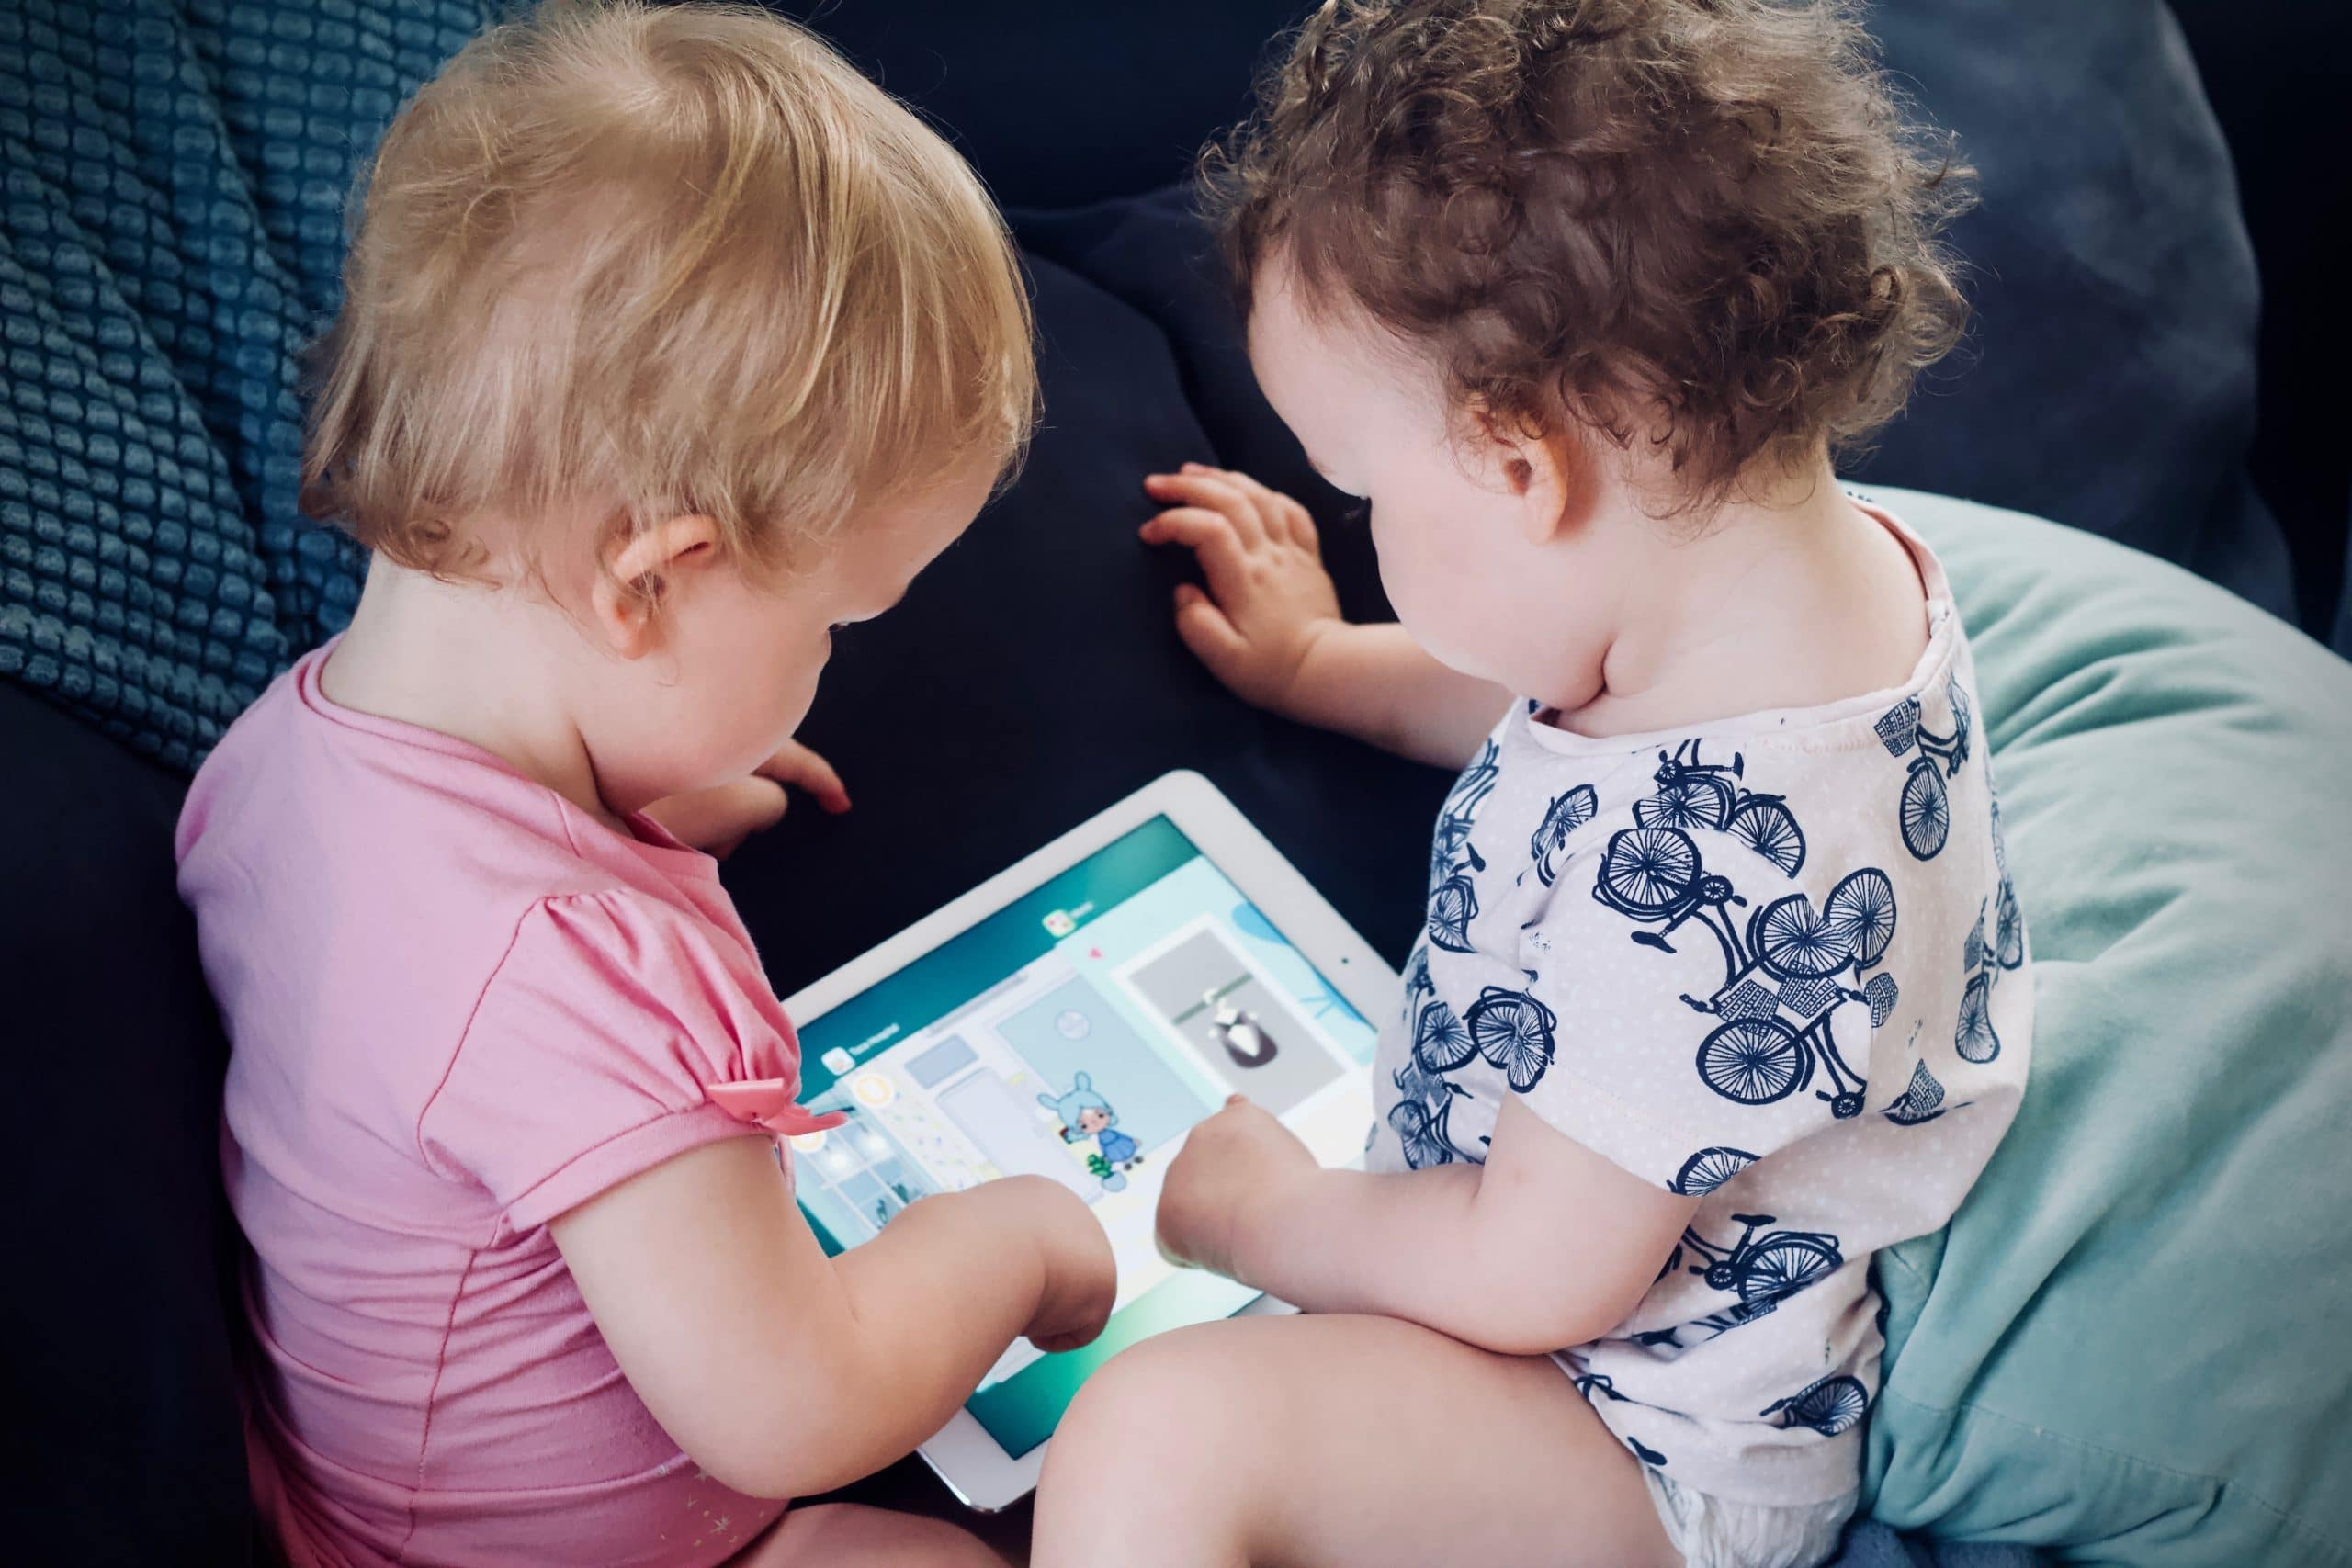 Screentime and its affect on kids